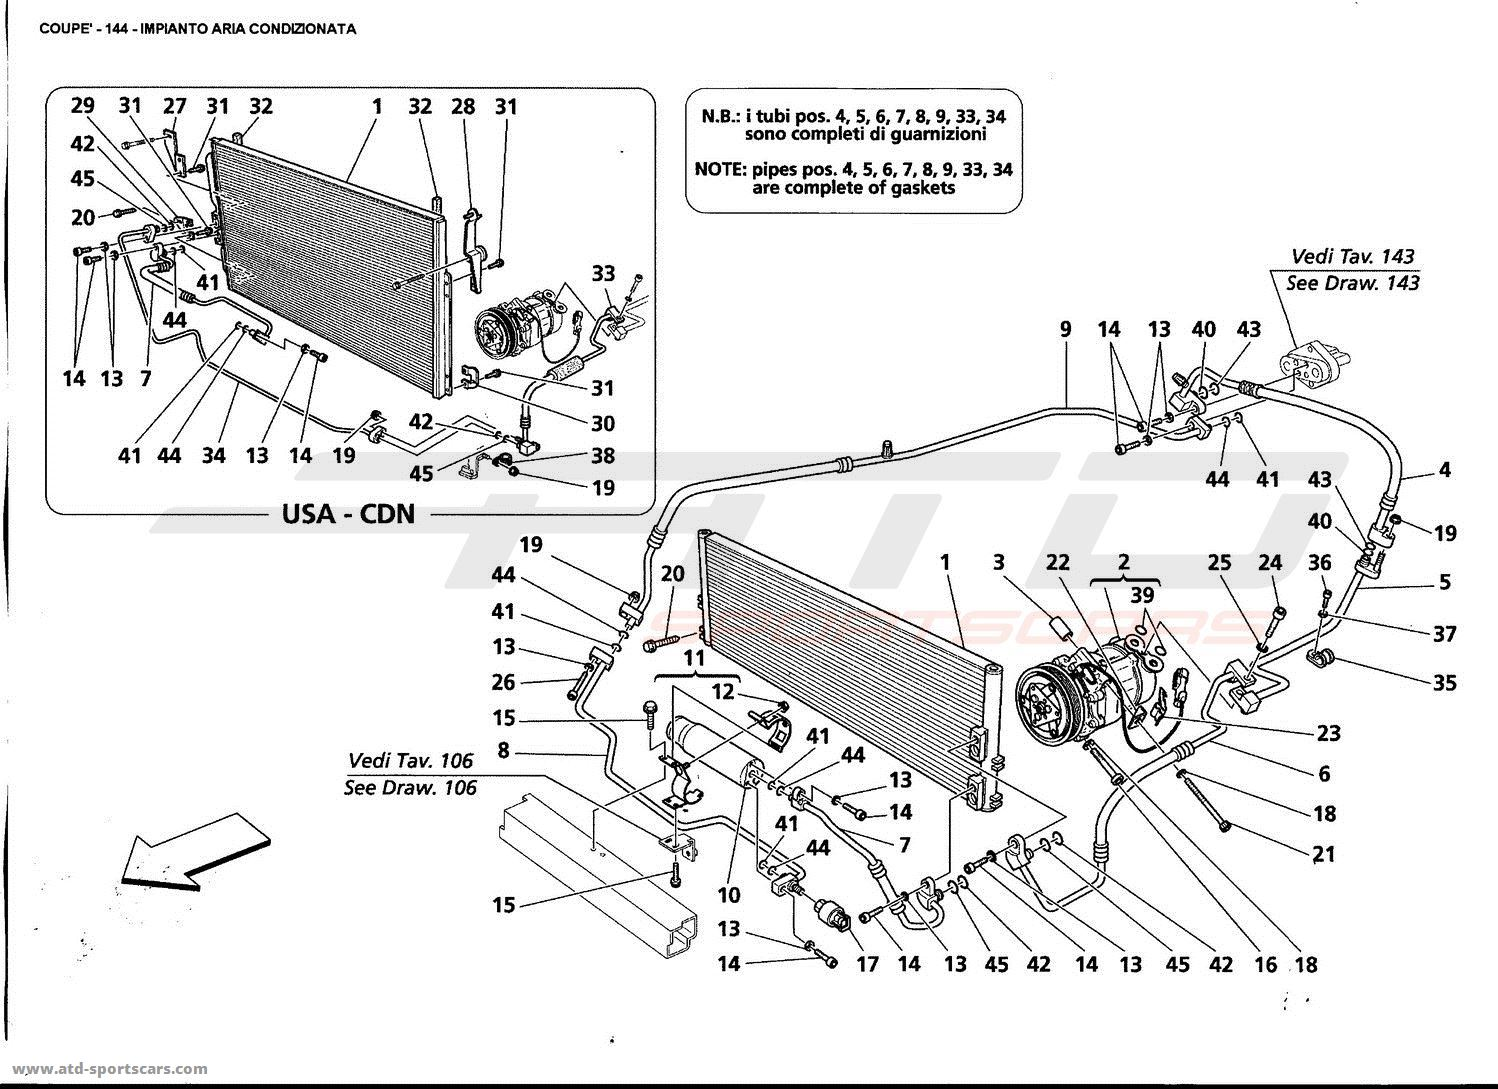 hummer h1 dash diagram html